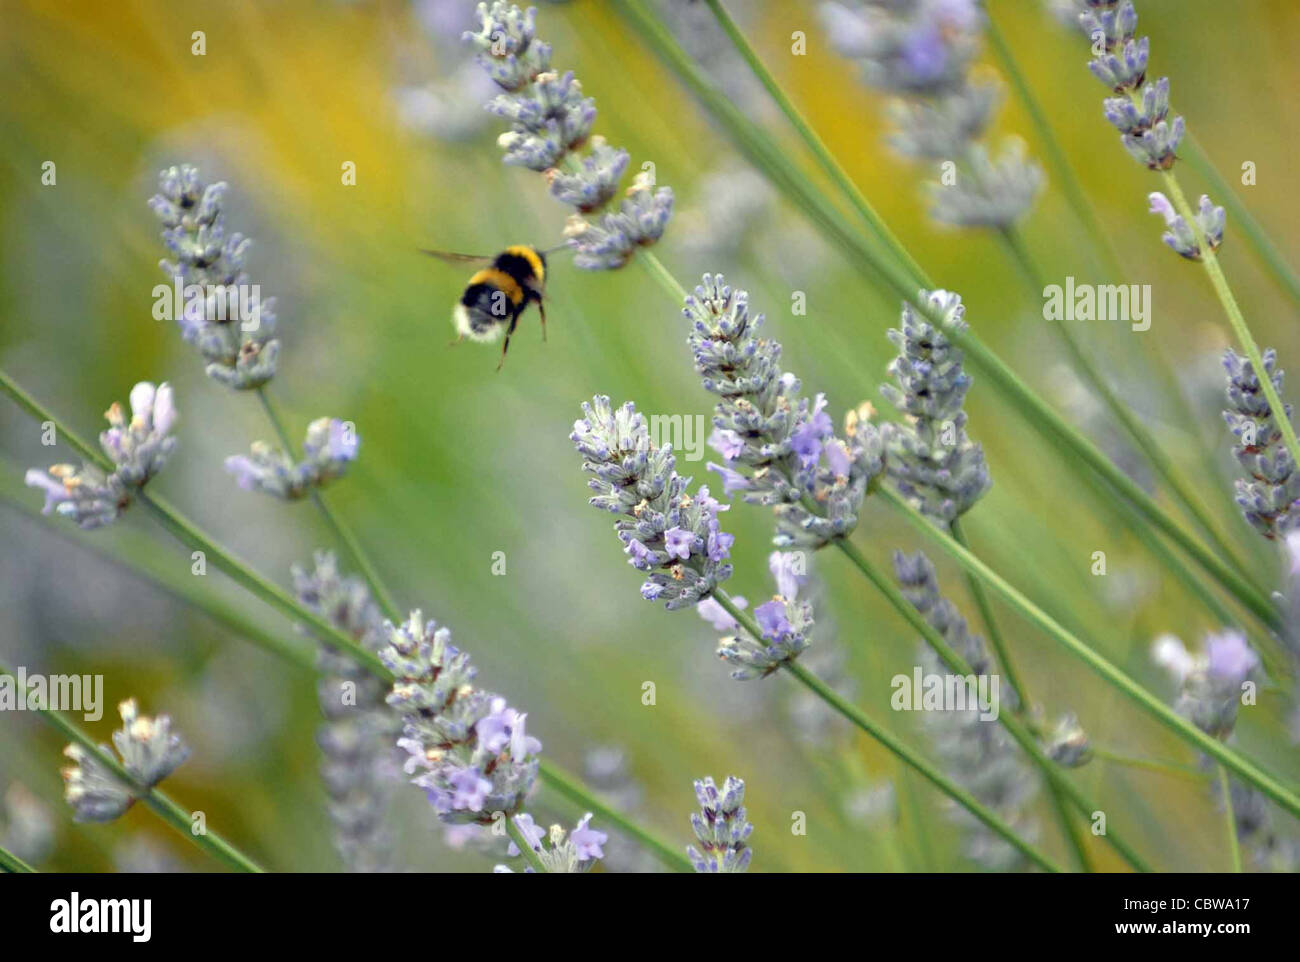 A bee explores a lavender bush in summer. - Stock Image